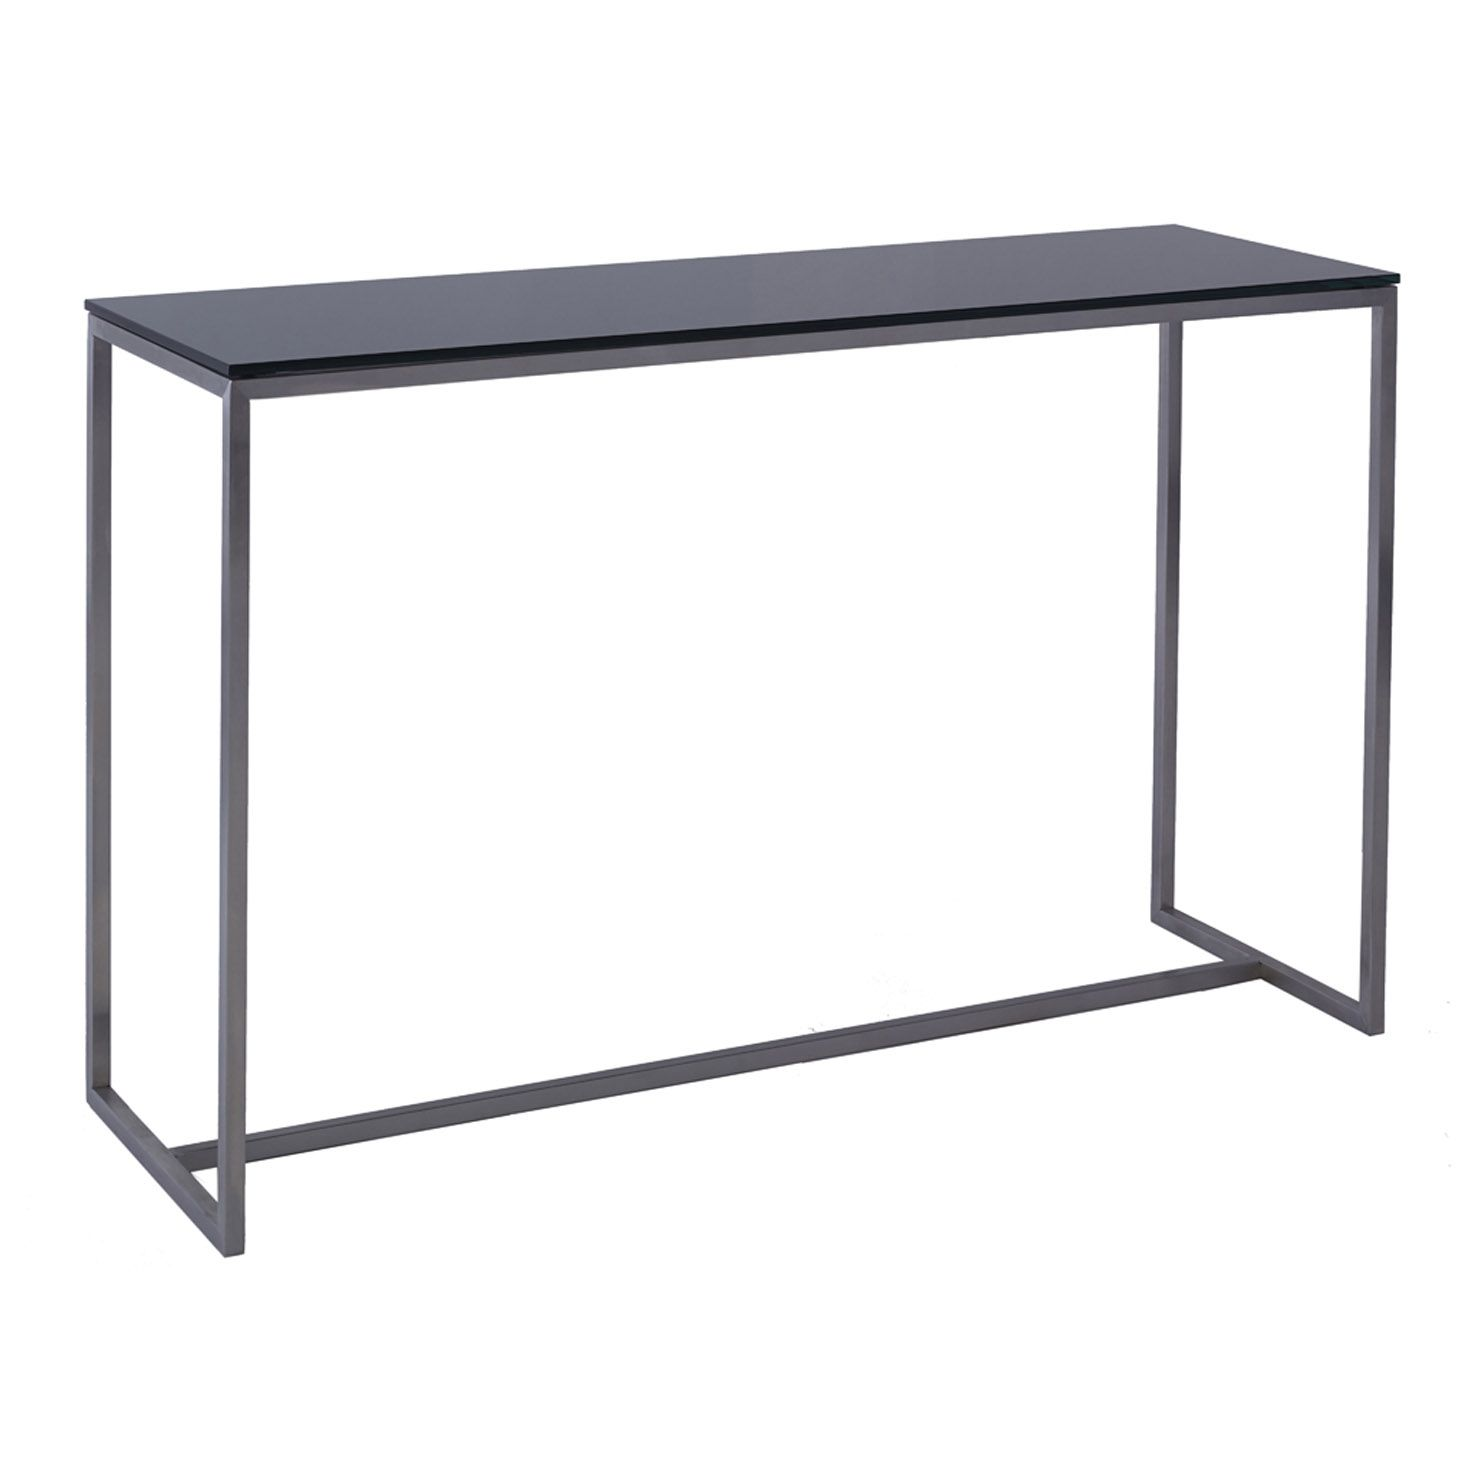 Freedom Console Table Mondrian Console Table Achica Console Tables Console